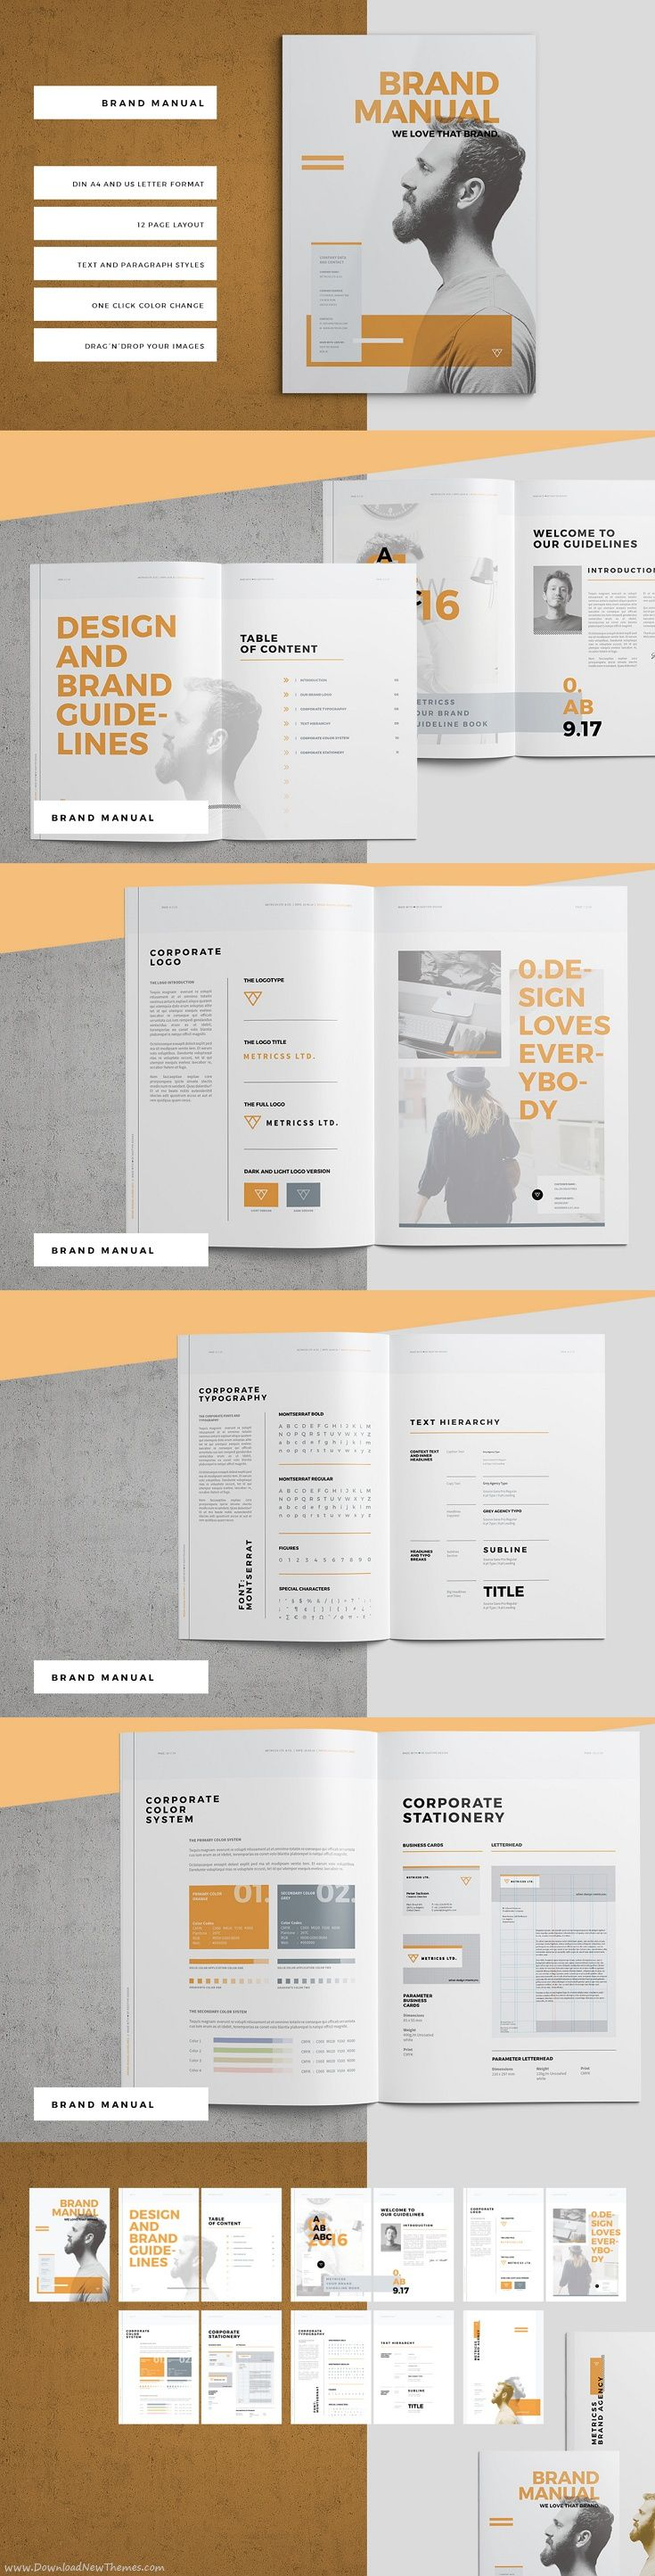 Stunning Brand Manual and Corporate Design Guideline Template ...